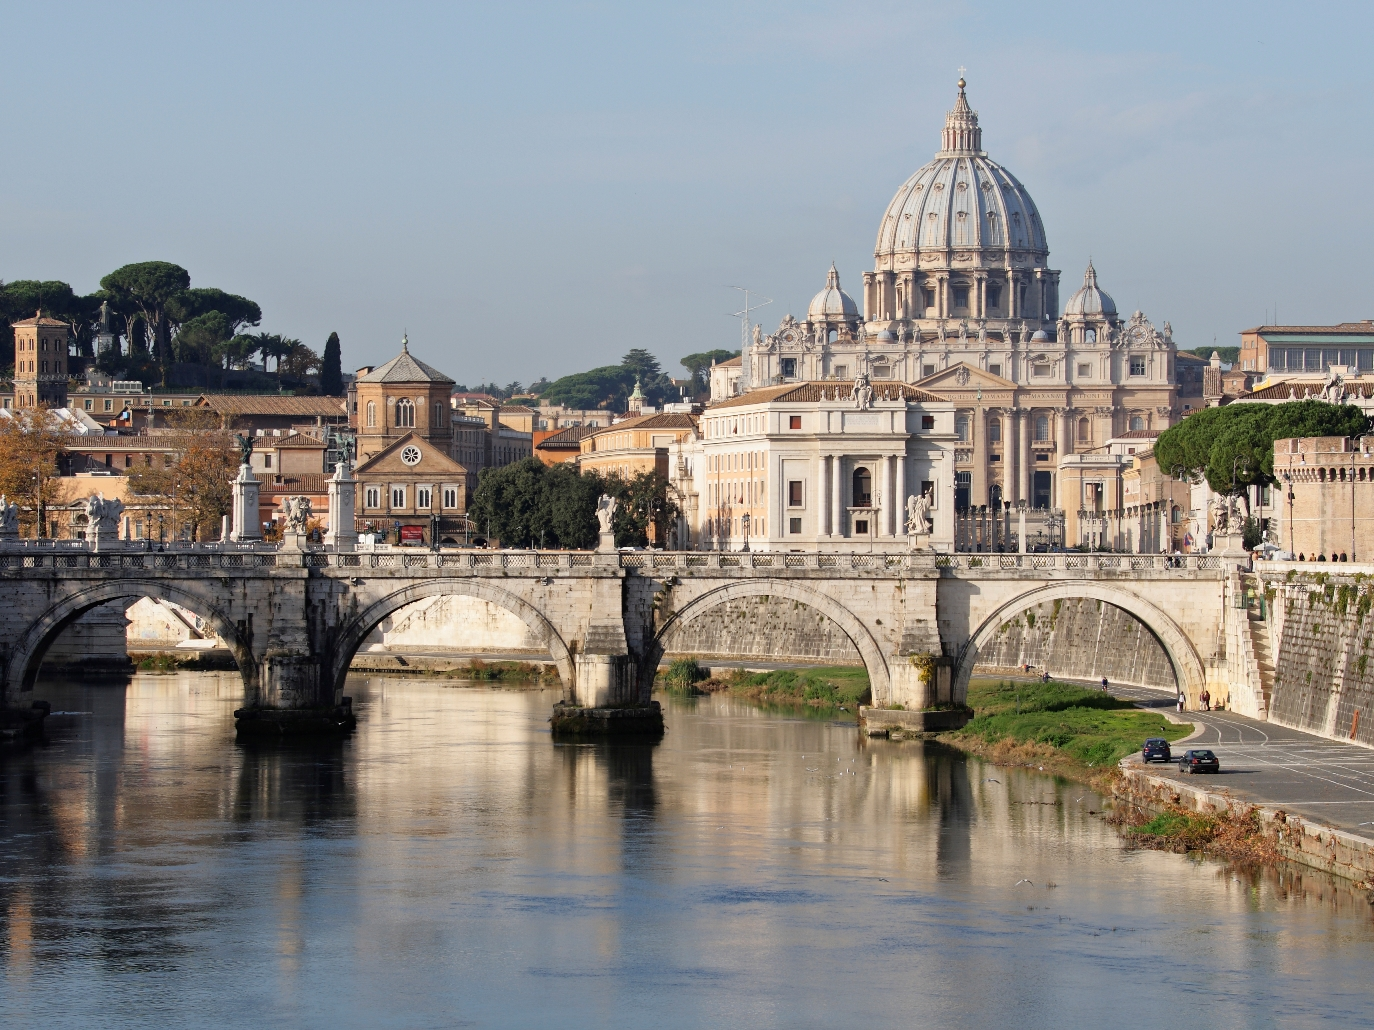 italy_rome_st._peters_basilica_and_ponte_sant_angelo_istock_000004947188large.jpg